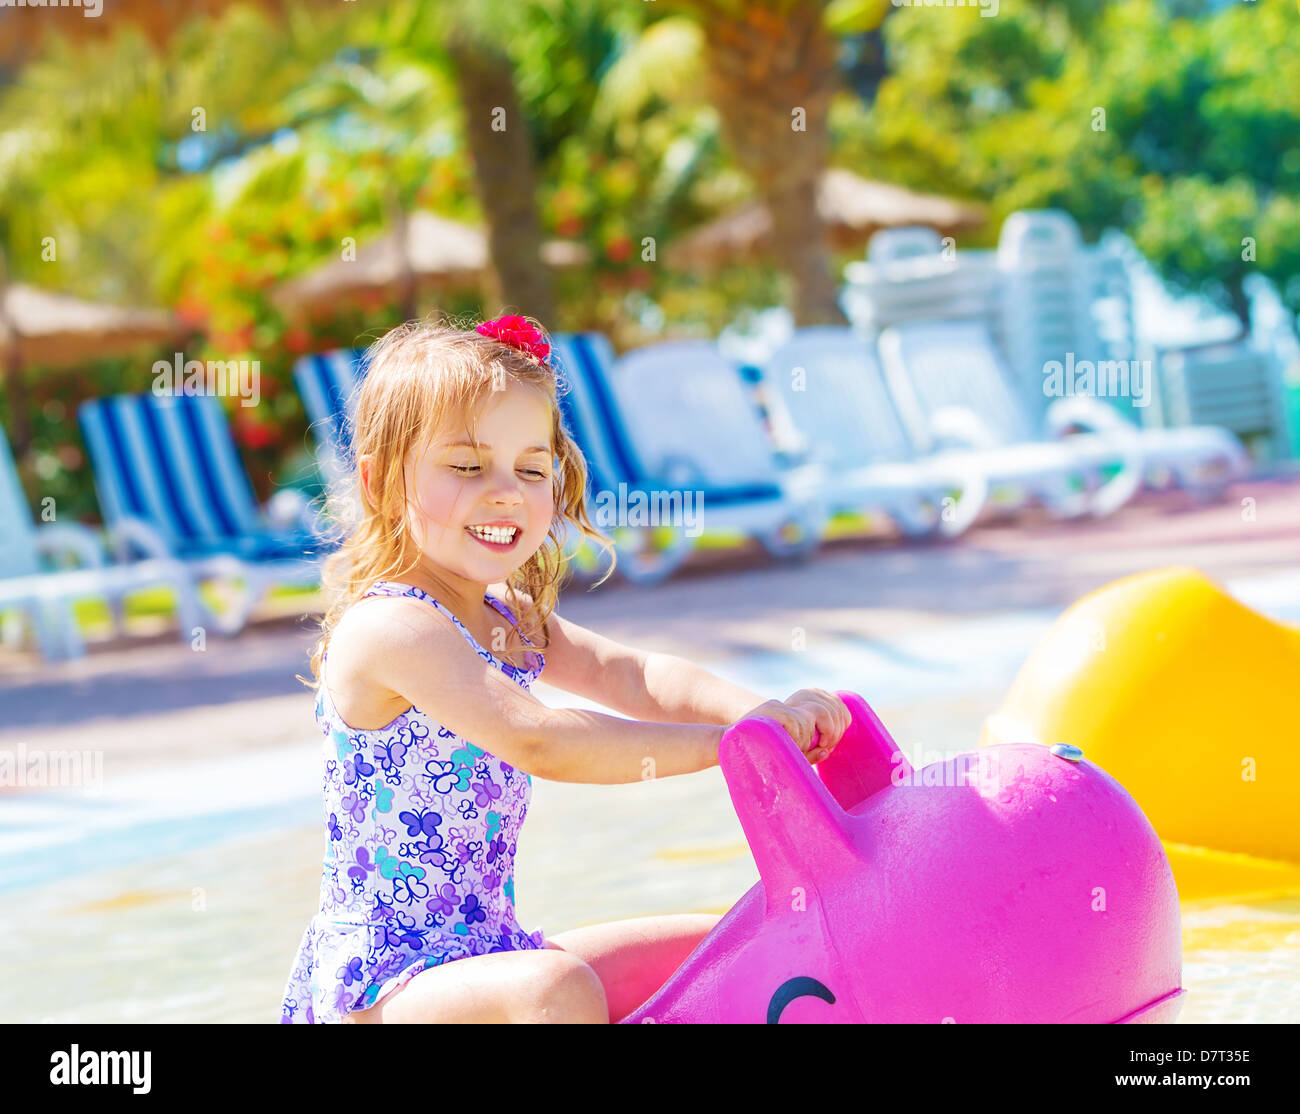 Happy baby girl having fun in aquapark, swimming in the pool on pink inflatable toy, daycare in summertime - Stock Image